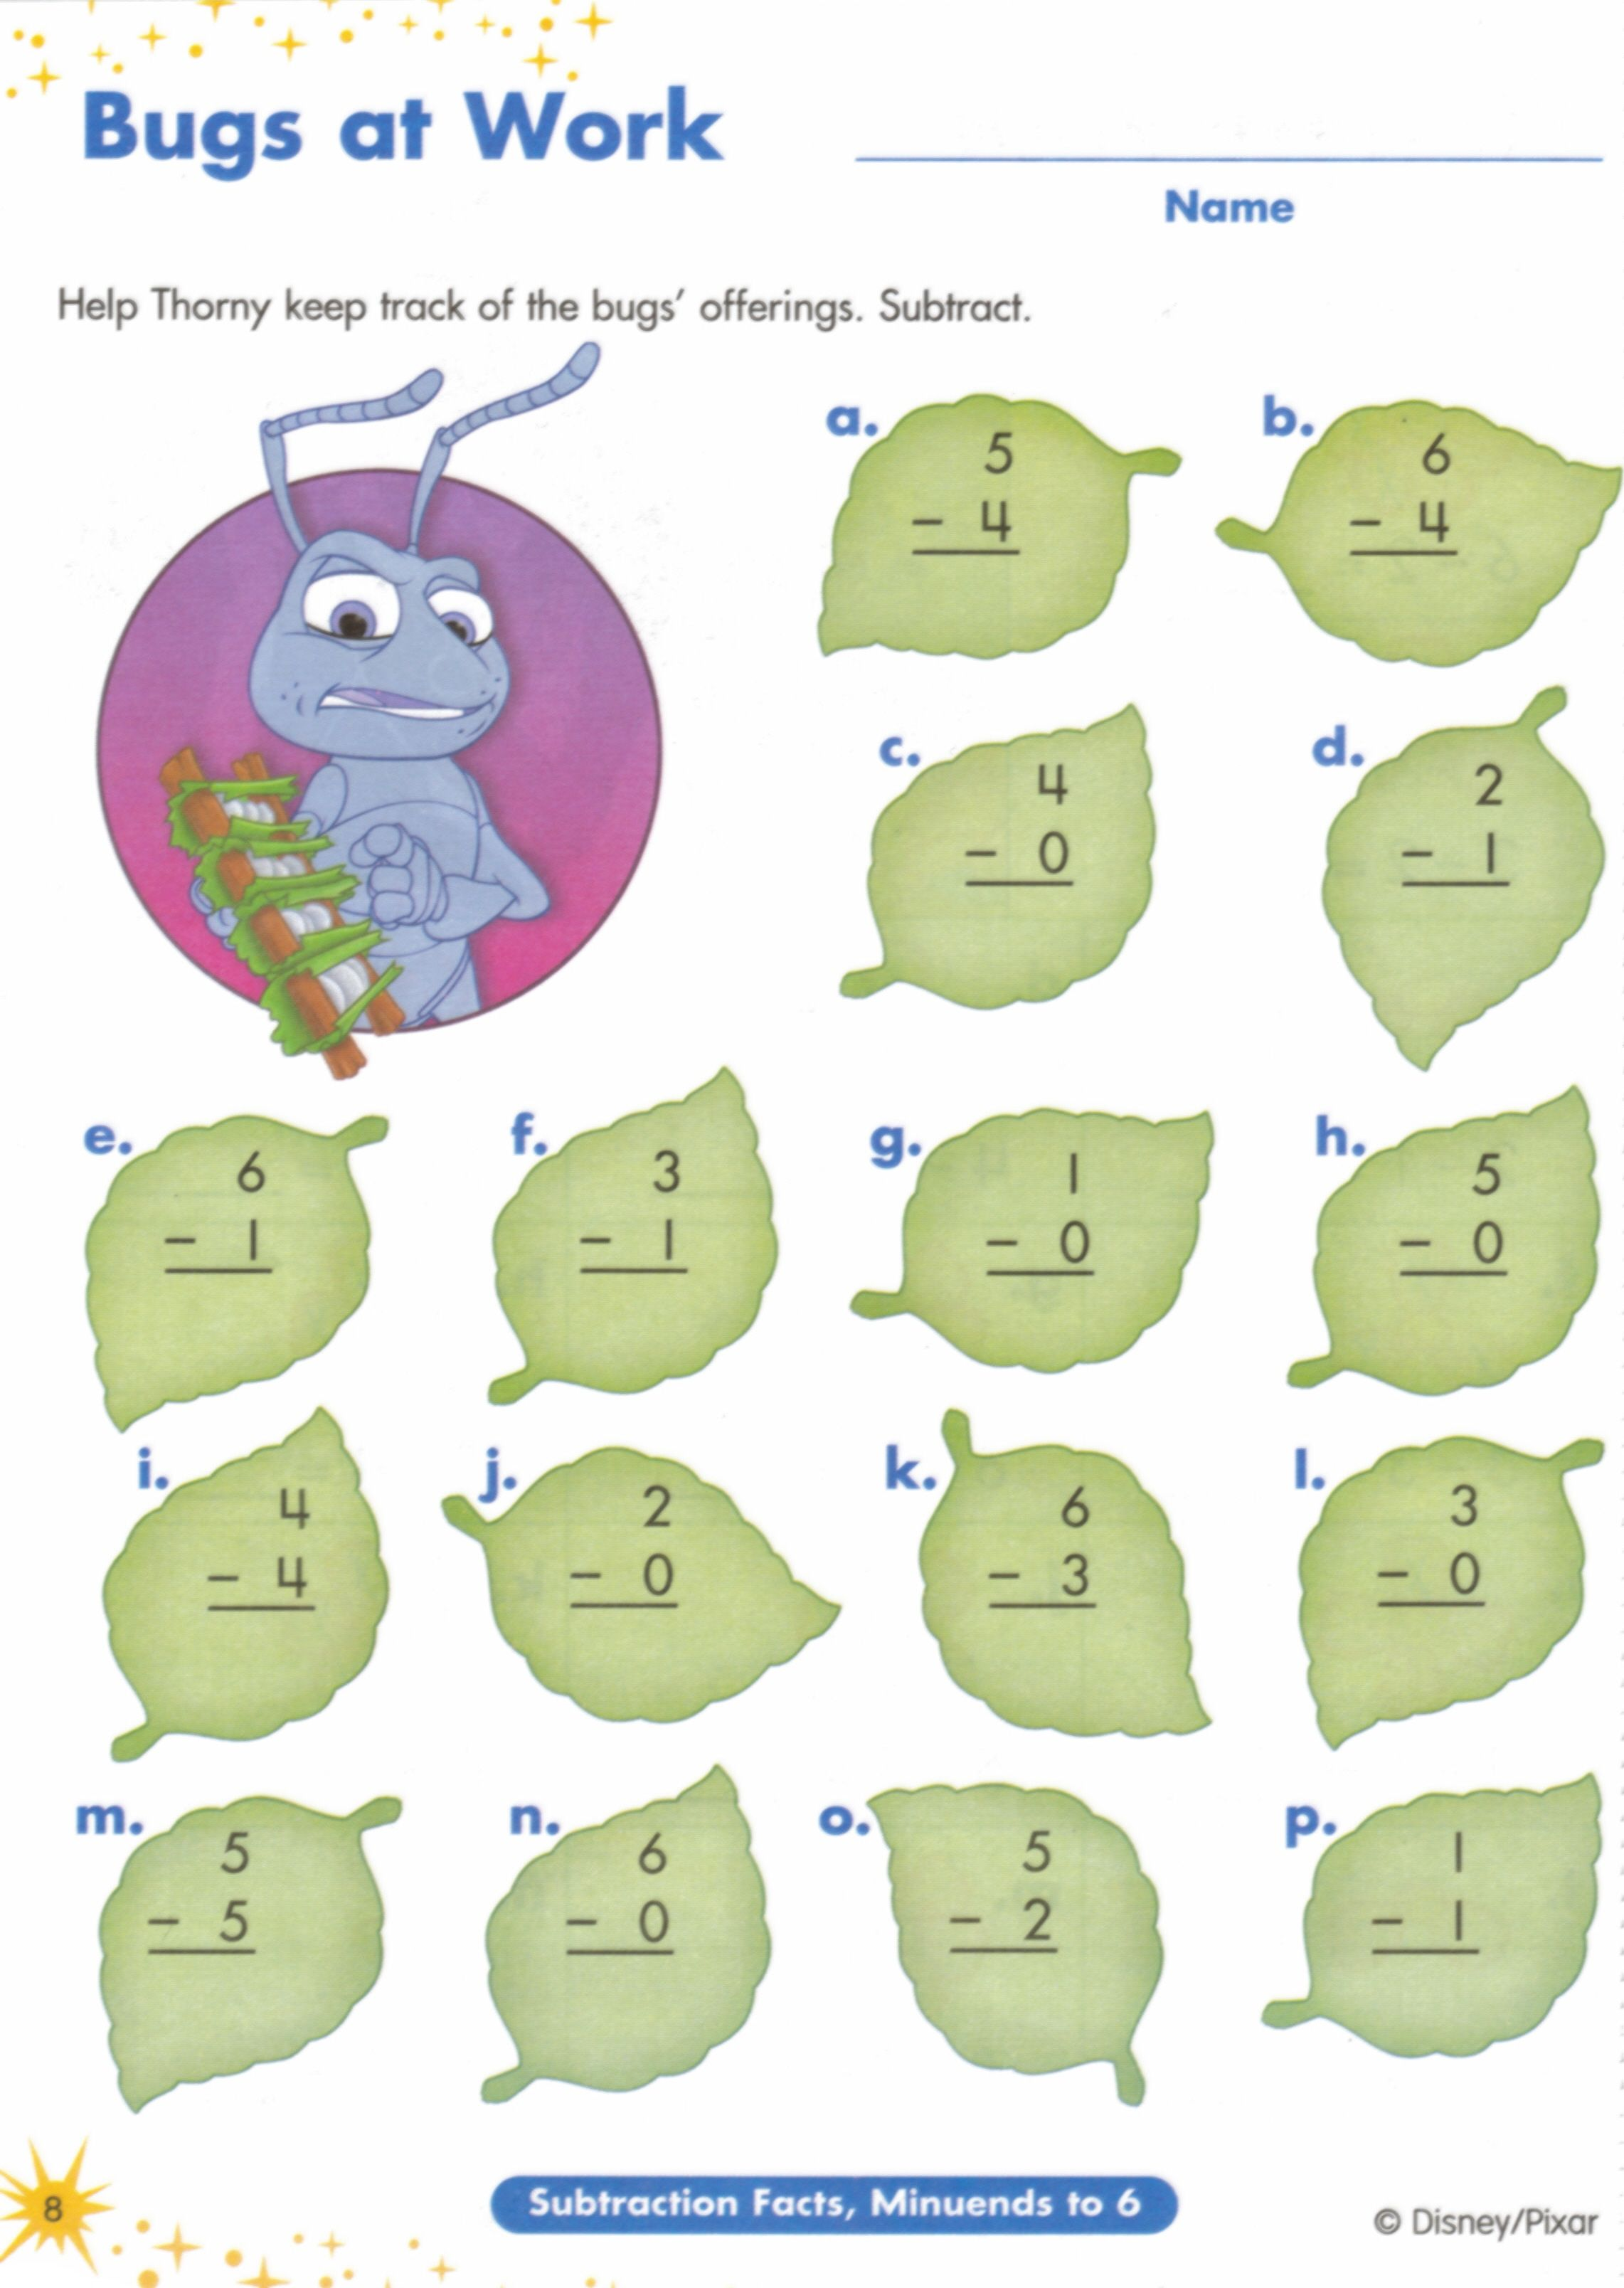 Weirdmailus  Pleasant  Images About Worksheets On Pinterest  Fun Facts For Kids  With Handsome  Images About Worksheets On Pinterest  Fun Facts For Kids Earth Day Worksheets And Jungles With Astonishing Similar Triangles Worksheet Also Parts Of Speech Worksheets In Addition Graphing Linear Equations Worksheet And Compare And Contrast Worksheets As Well As Literal Equations Worksheet Additionally Probability Worksheets From Pinterestcom With Weirdmailus  Handsome  Images About Worksheets On Pinterest  Fun Facts For Kids  With Astonishing  Images About Worksheets On Pinterest  Fun Facts For Kids Earth Day Worksheets And Jungles And Pleasant Similar Triangles Worksheet Also Parts Of Speech Worksheets In Addition Graphing Linear Equations Worksheet From Pinterestcom